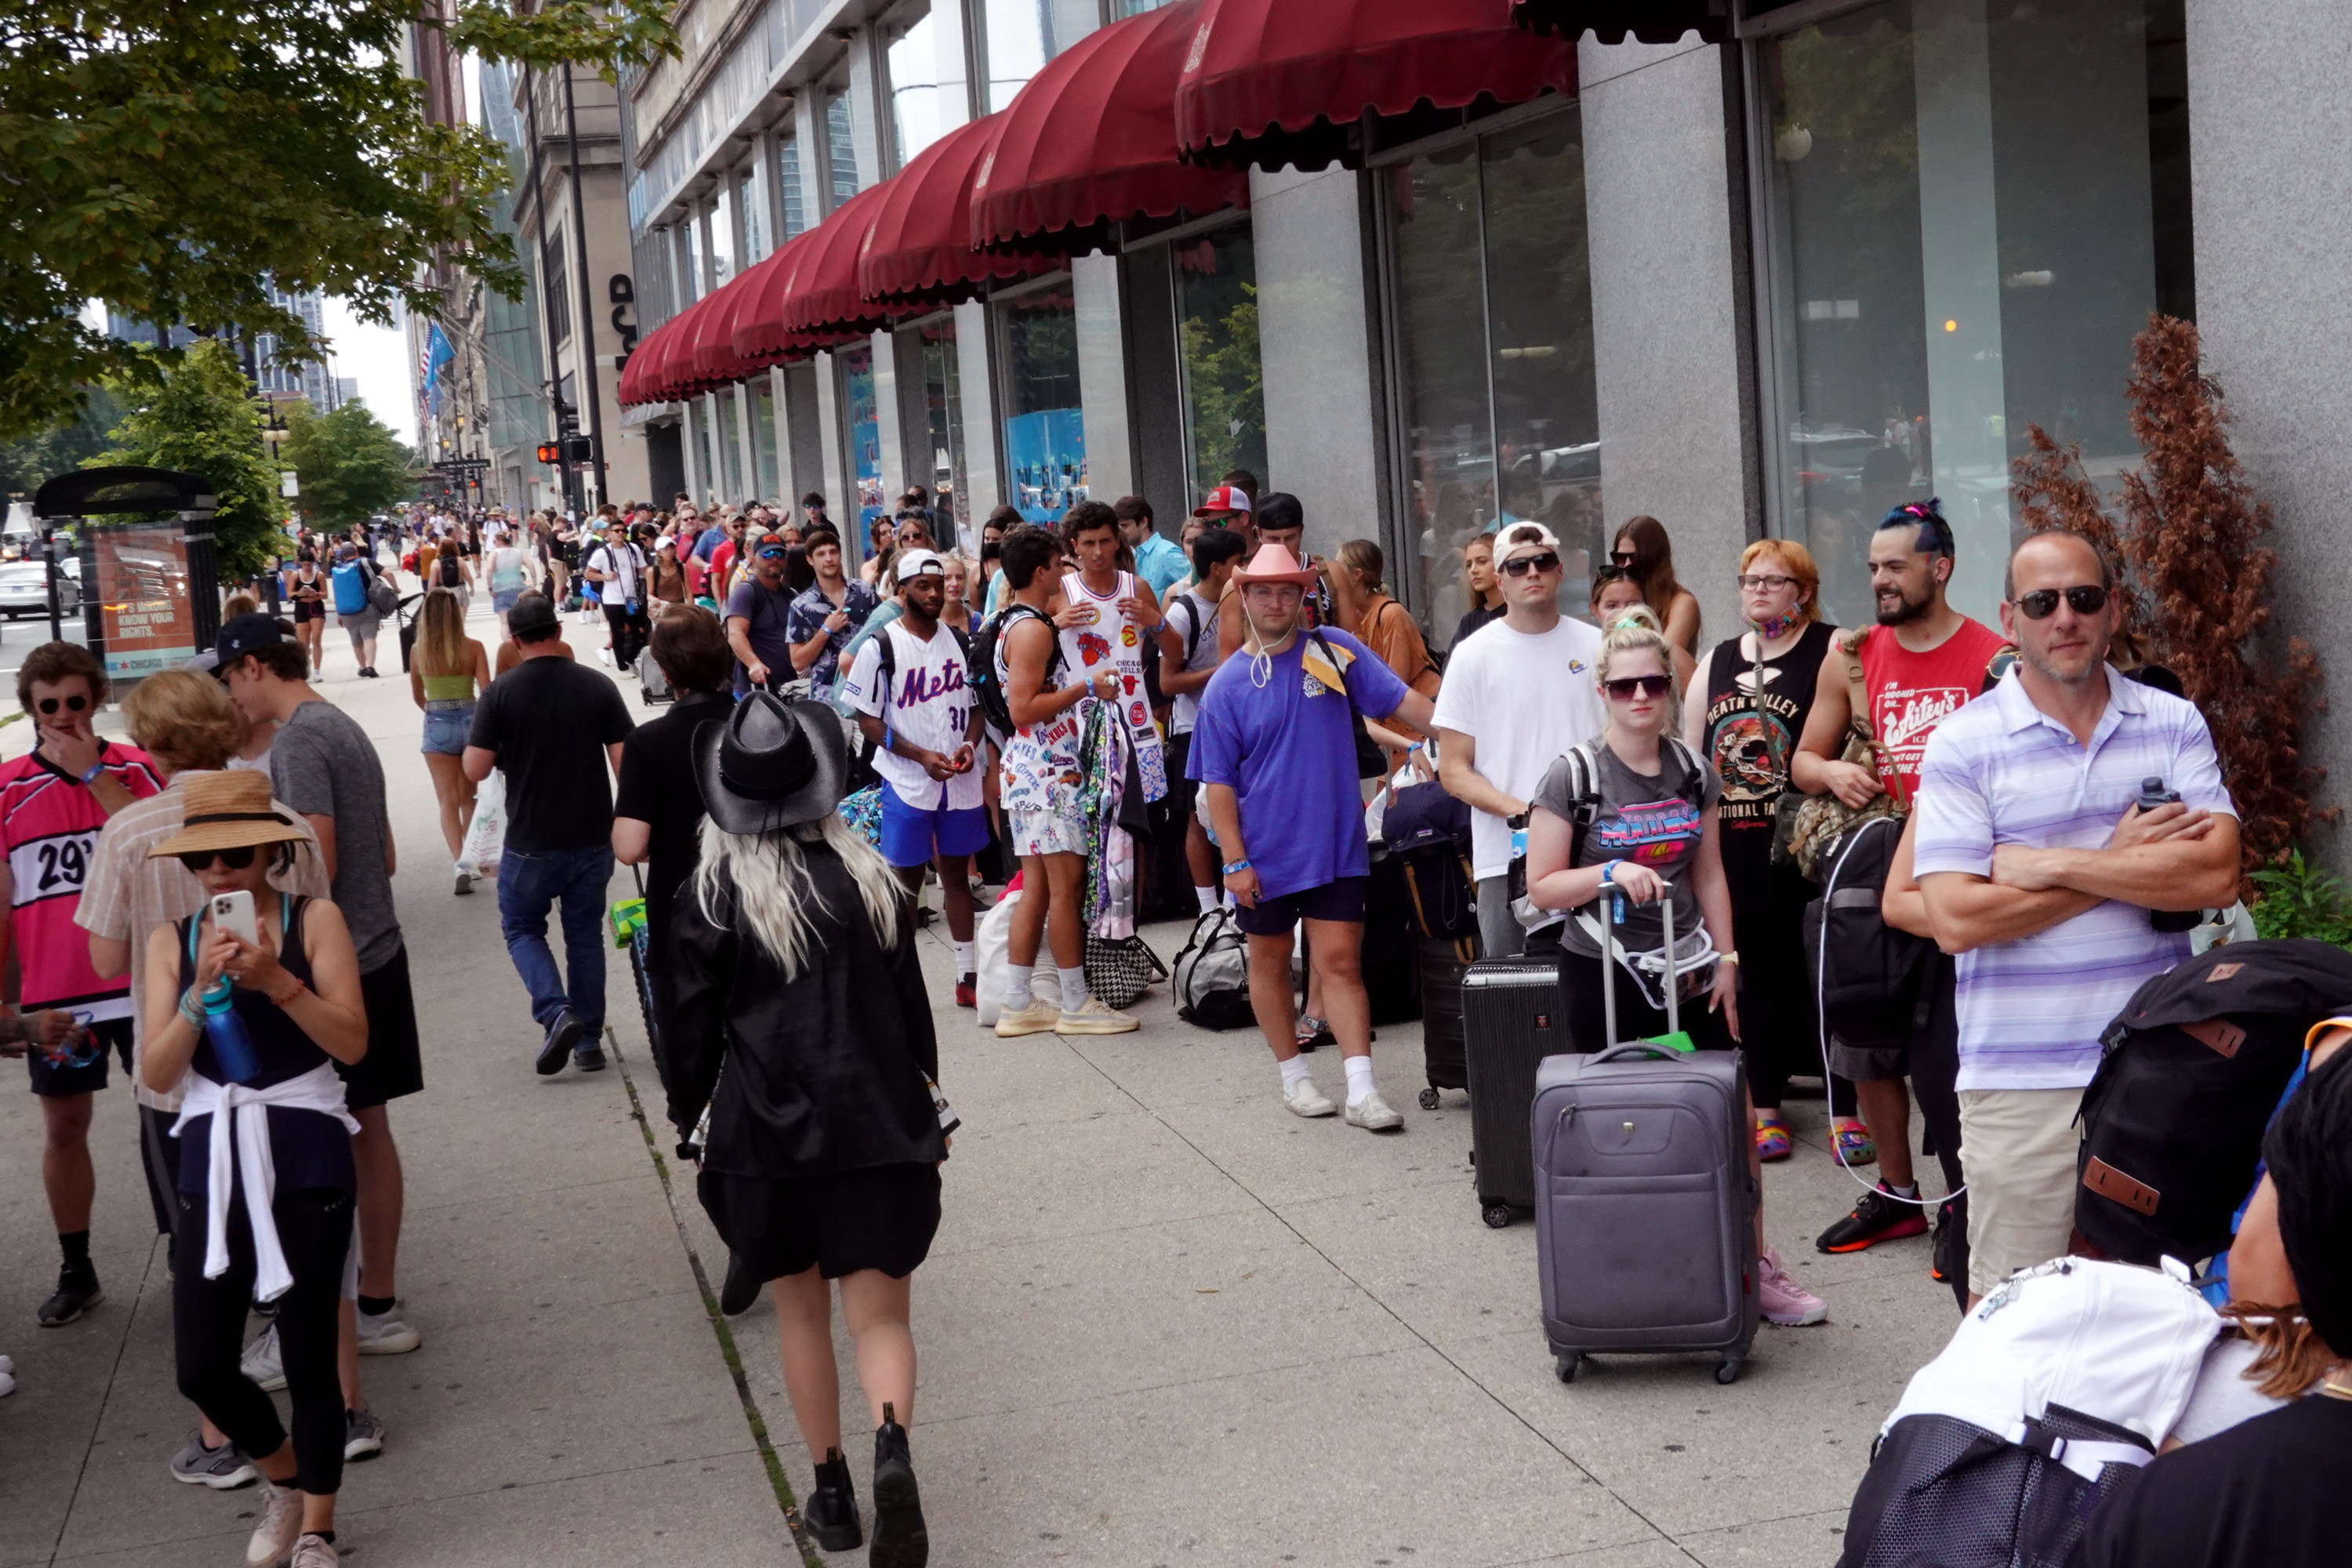 Lollapalooza music festival attendees form a line around a block in Chicago as they prepare to check in to their hotel.